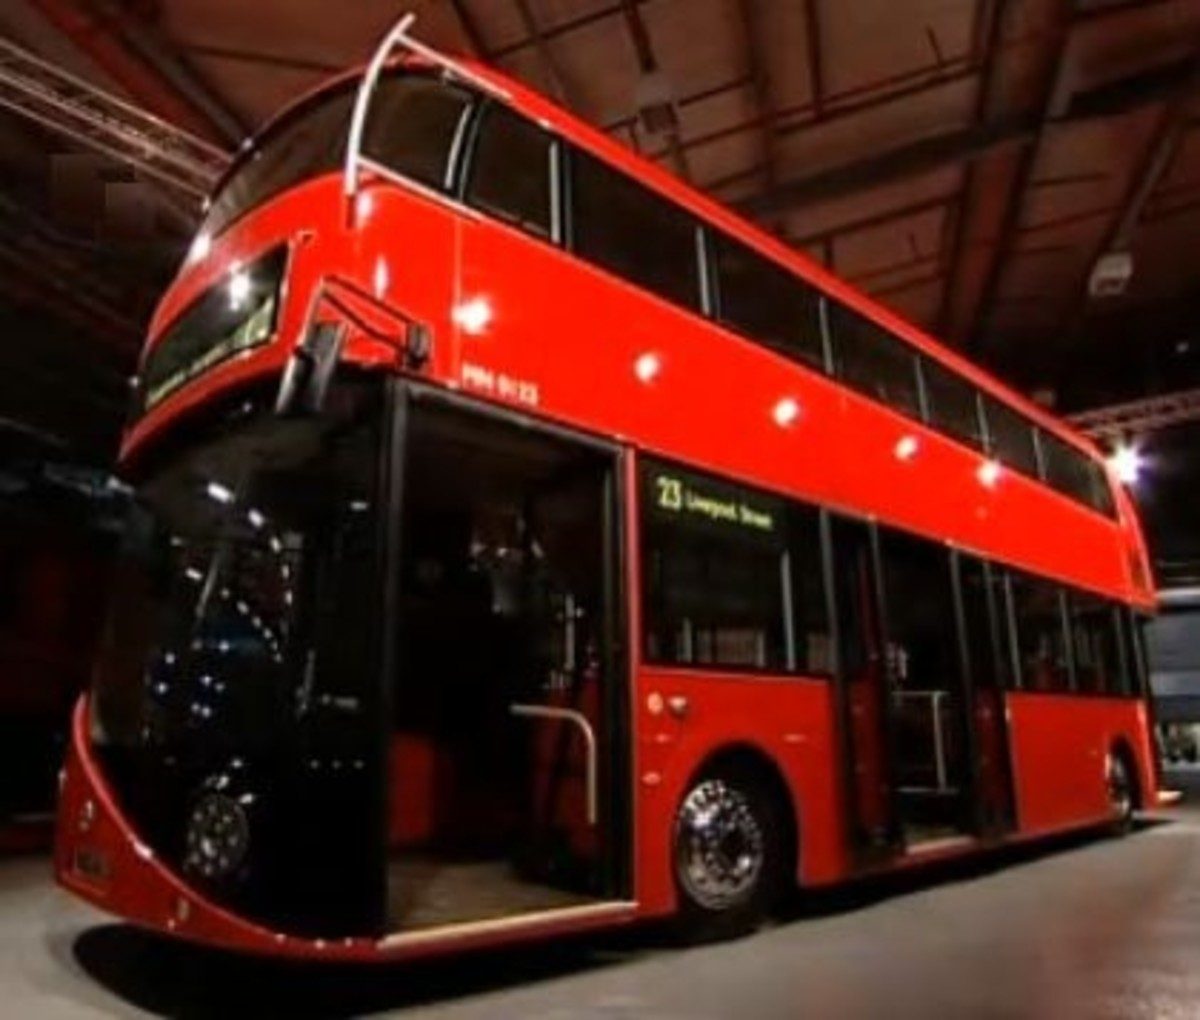 New Routemaster Bus Unveiled by Boris Johnson